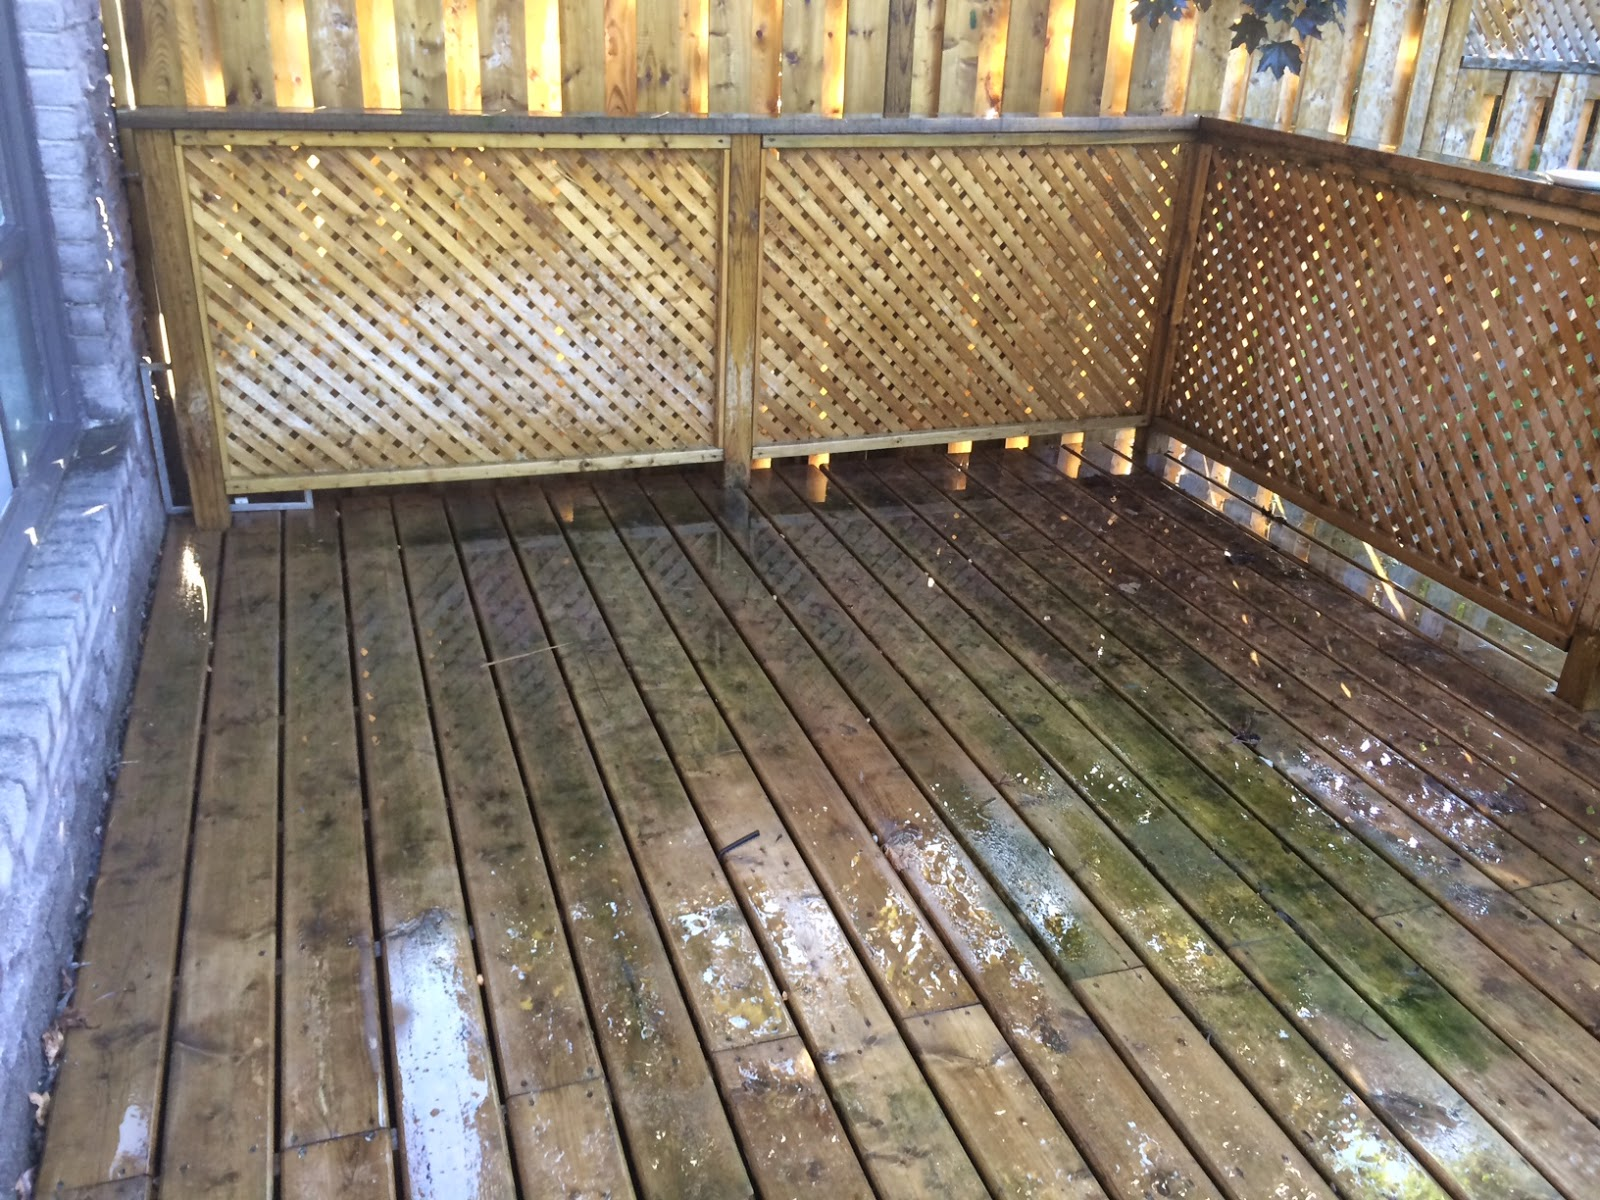 Erin Mills Paint Decor Centre Inc Home - Before clean must be applied to a wet surface i sprayed the entire deck with my garden hose before using the diluted clean solution